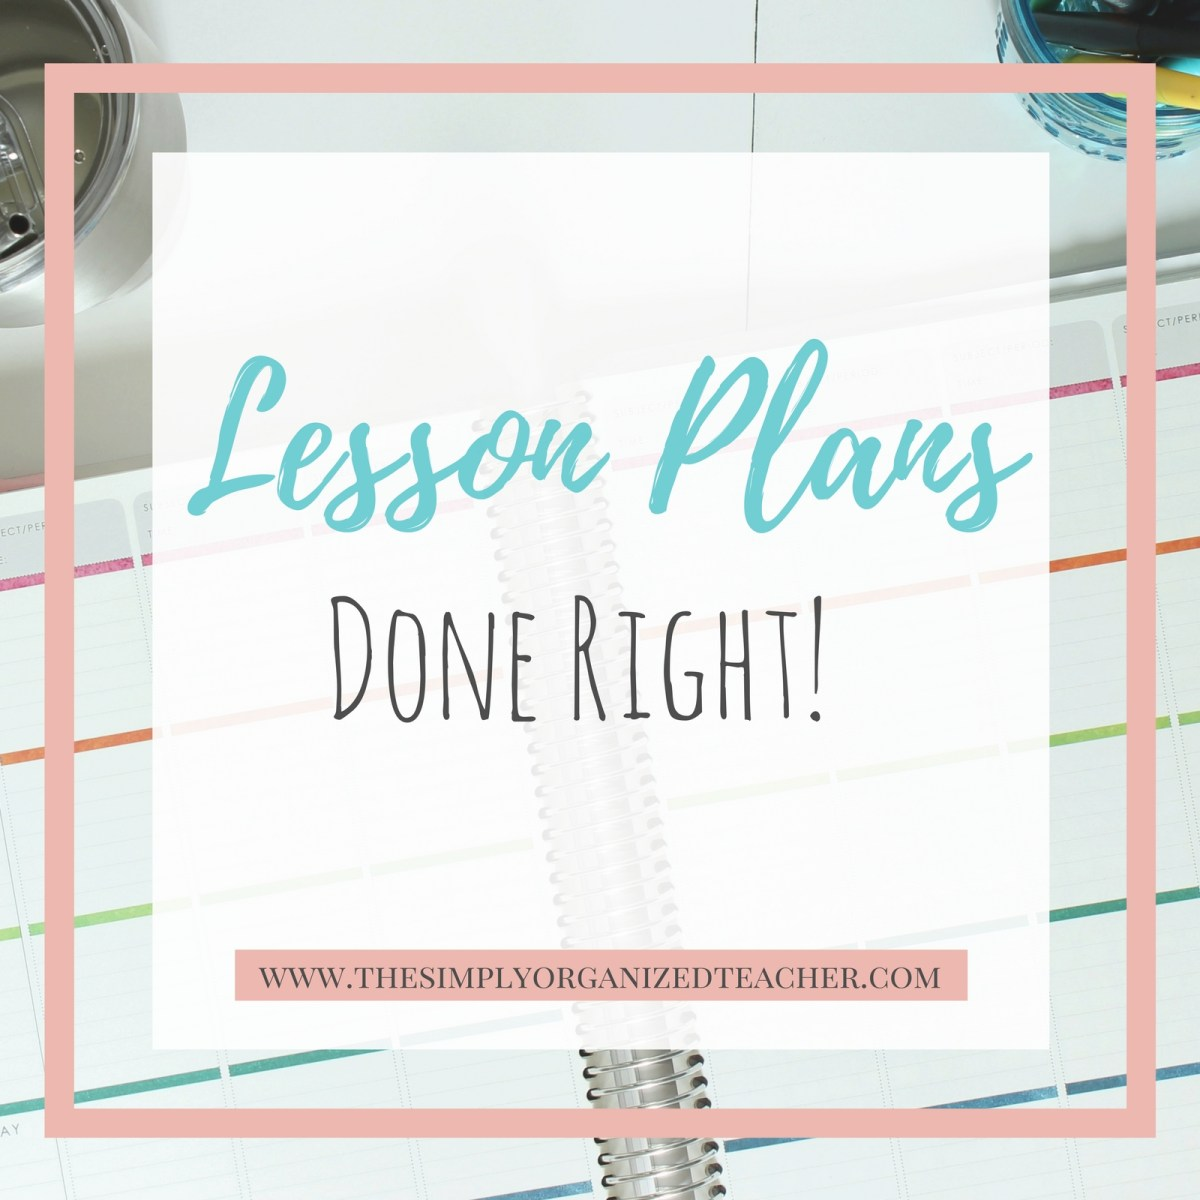 Lesson Plans Done Right: Classroom Management Series Pt. 3